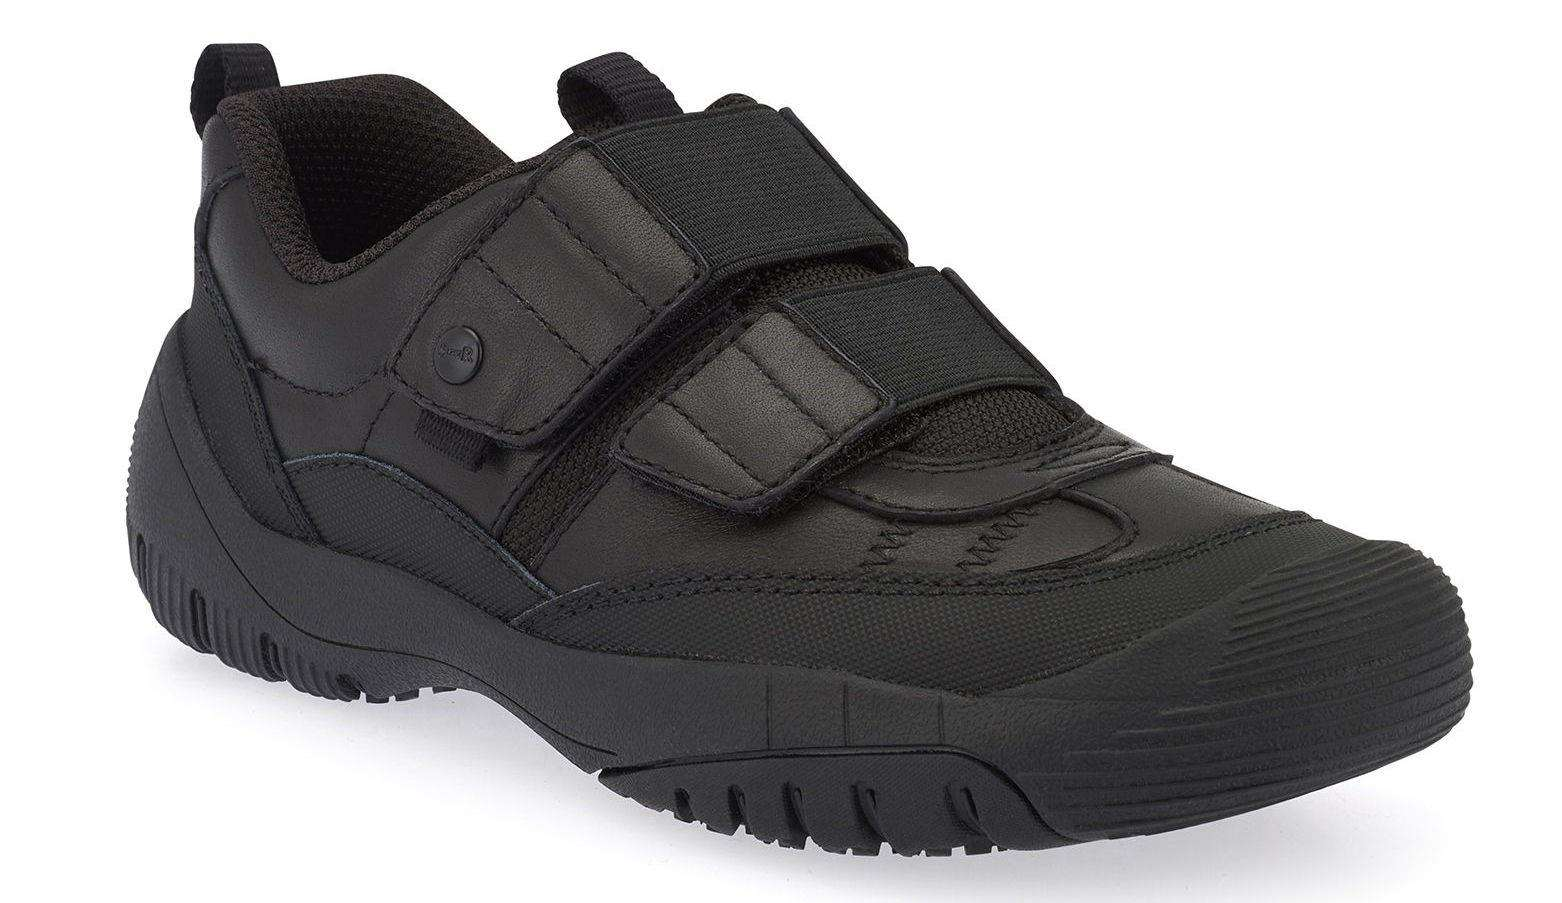 d250afd5ea Fearless Leather Riptape Active School Shoes, £52.99, Start-Rite